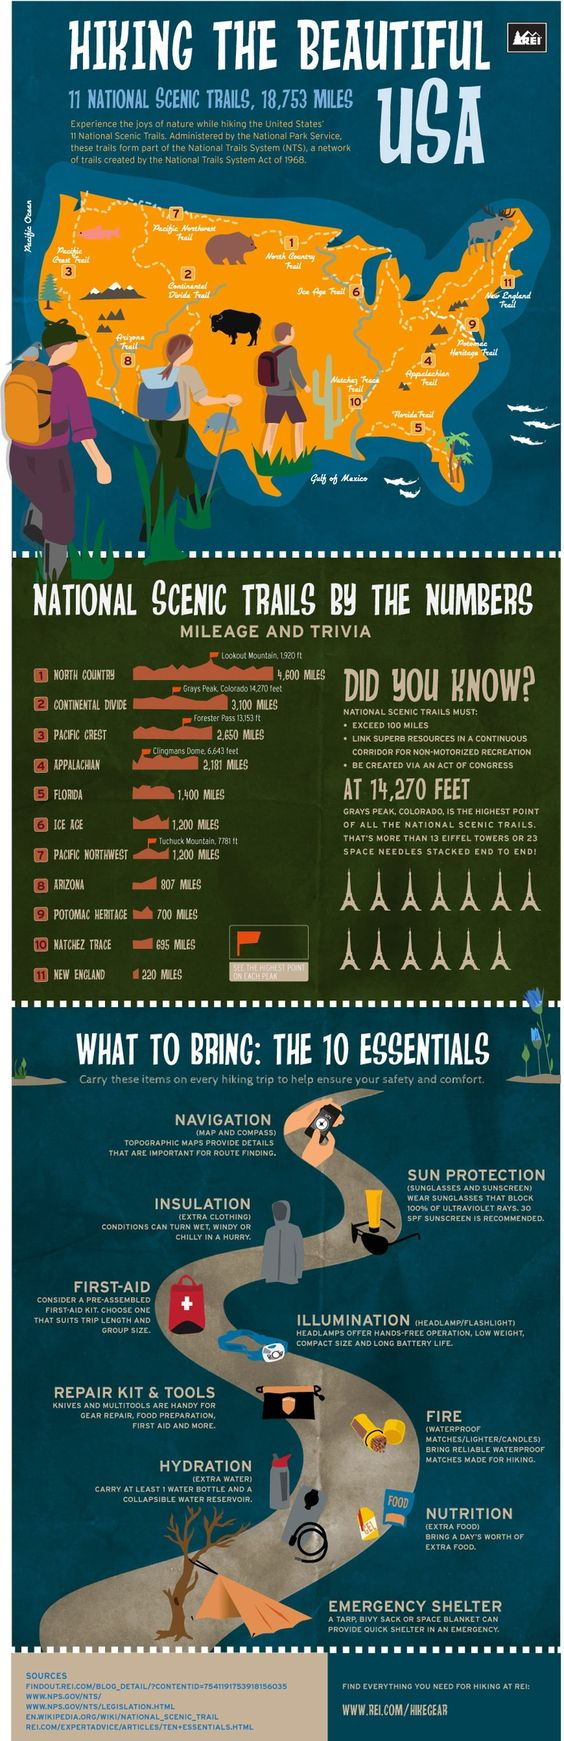 Plan a fun and safe hiking trip with a little help from this REI infographic. Let us take care of the details by joining REI on a weekend adventure hiking along the famed Appalachian Trail!